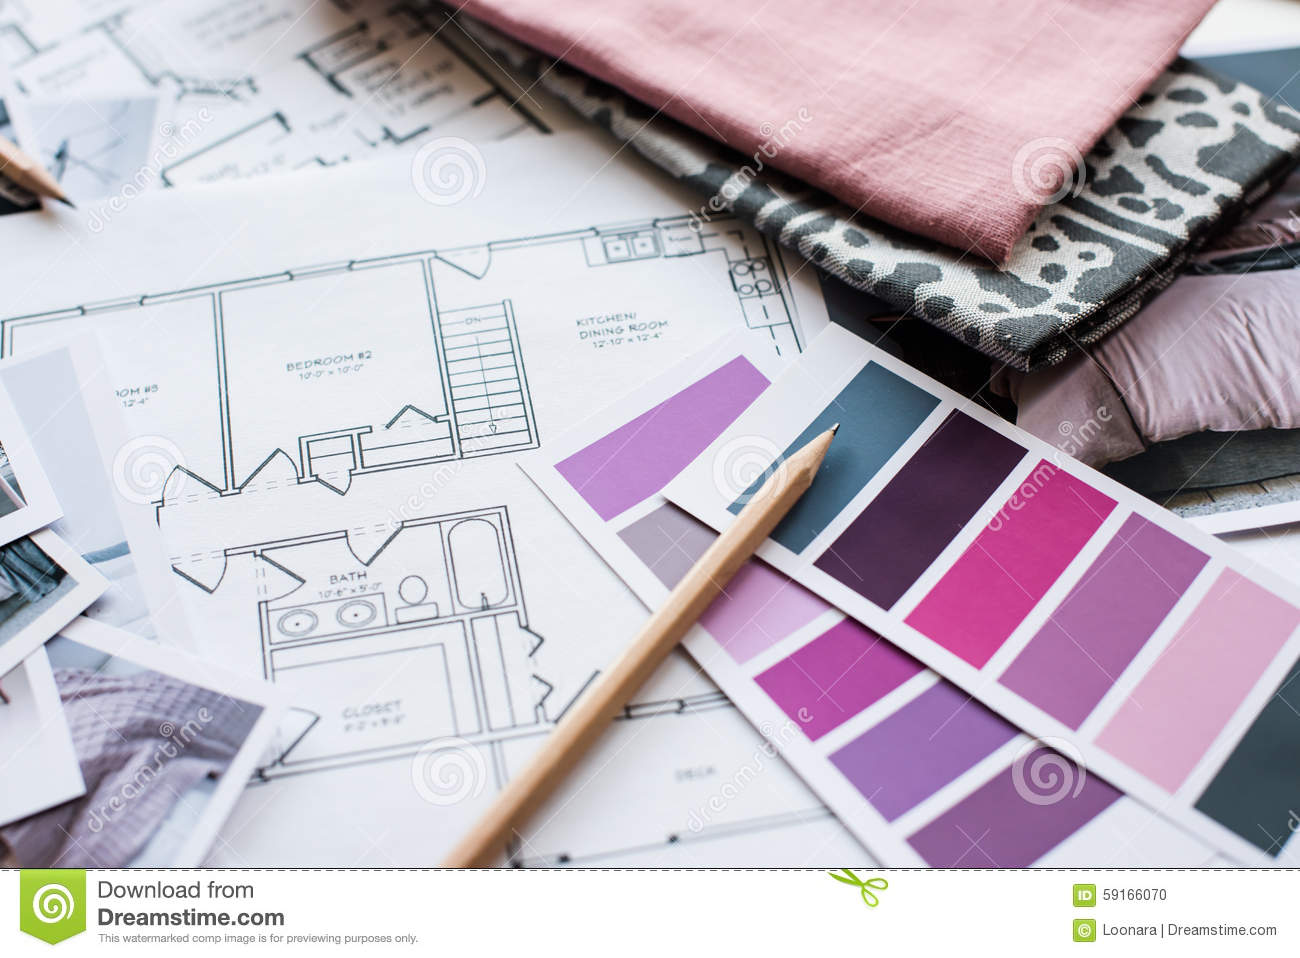 Interior Designers At Work architect and interior designer work table stock photo - image